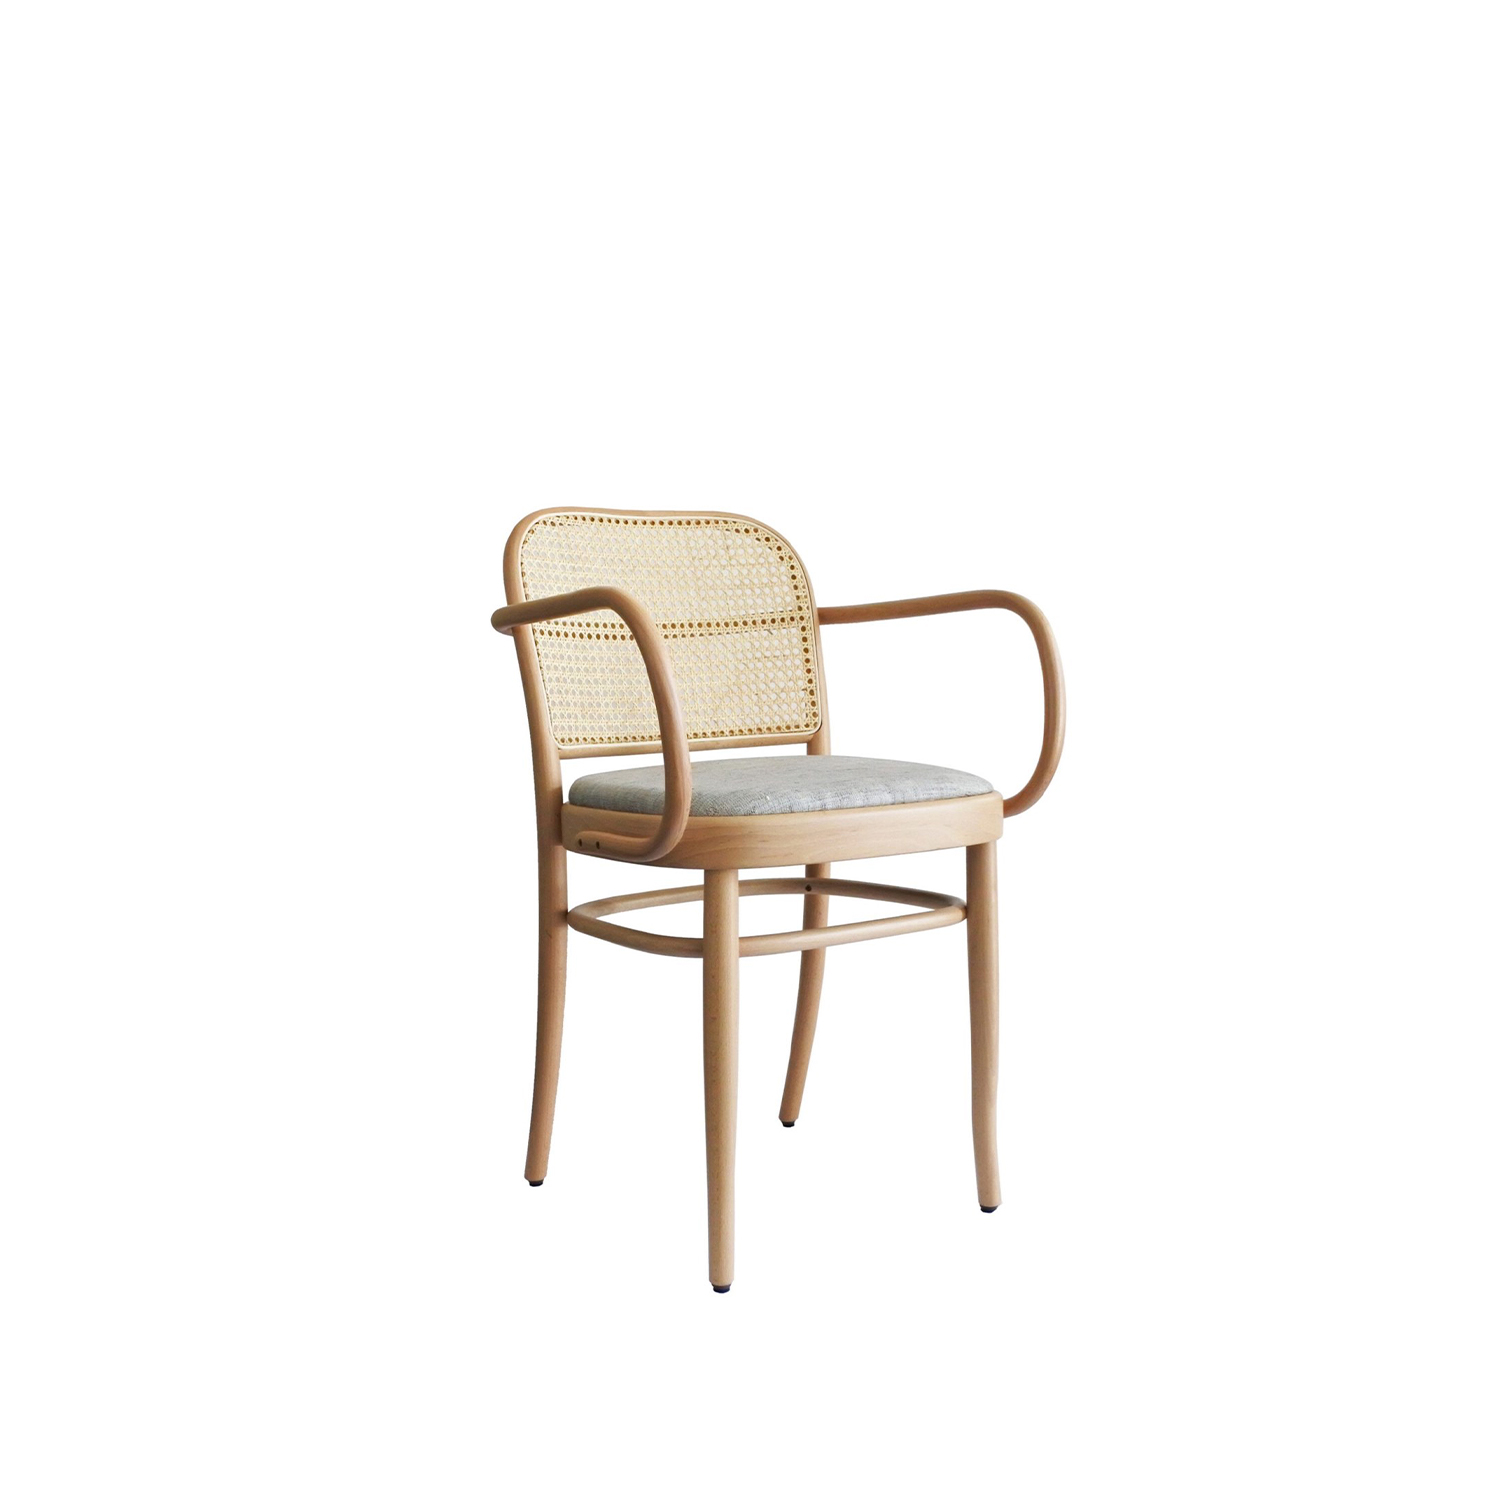 N.811 Armchair with Upholstered Seat  - N°811 is a high bar stool in wood and straw backrest.‎ Josef Hoffmann's renowned chair design known by the code 811 has a new cousin – barstool 813.‎ Just as the original chair, the barstool can be finished with airy cane weave, plush upholstery or a combination of the two.‎ | Matter of Stuff